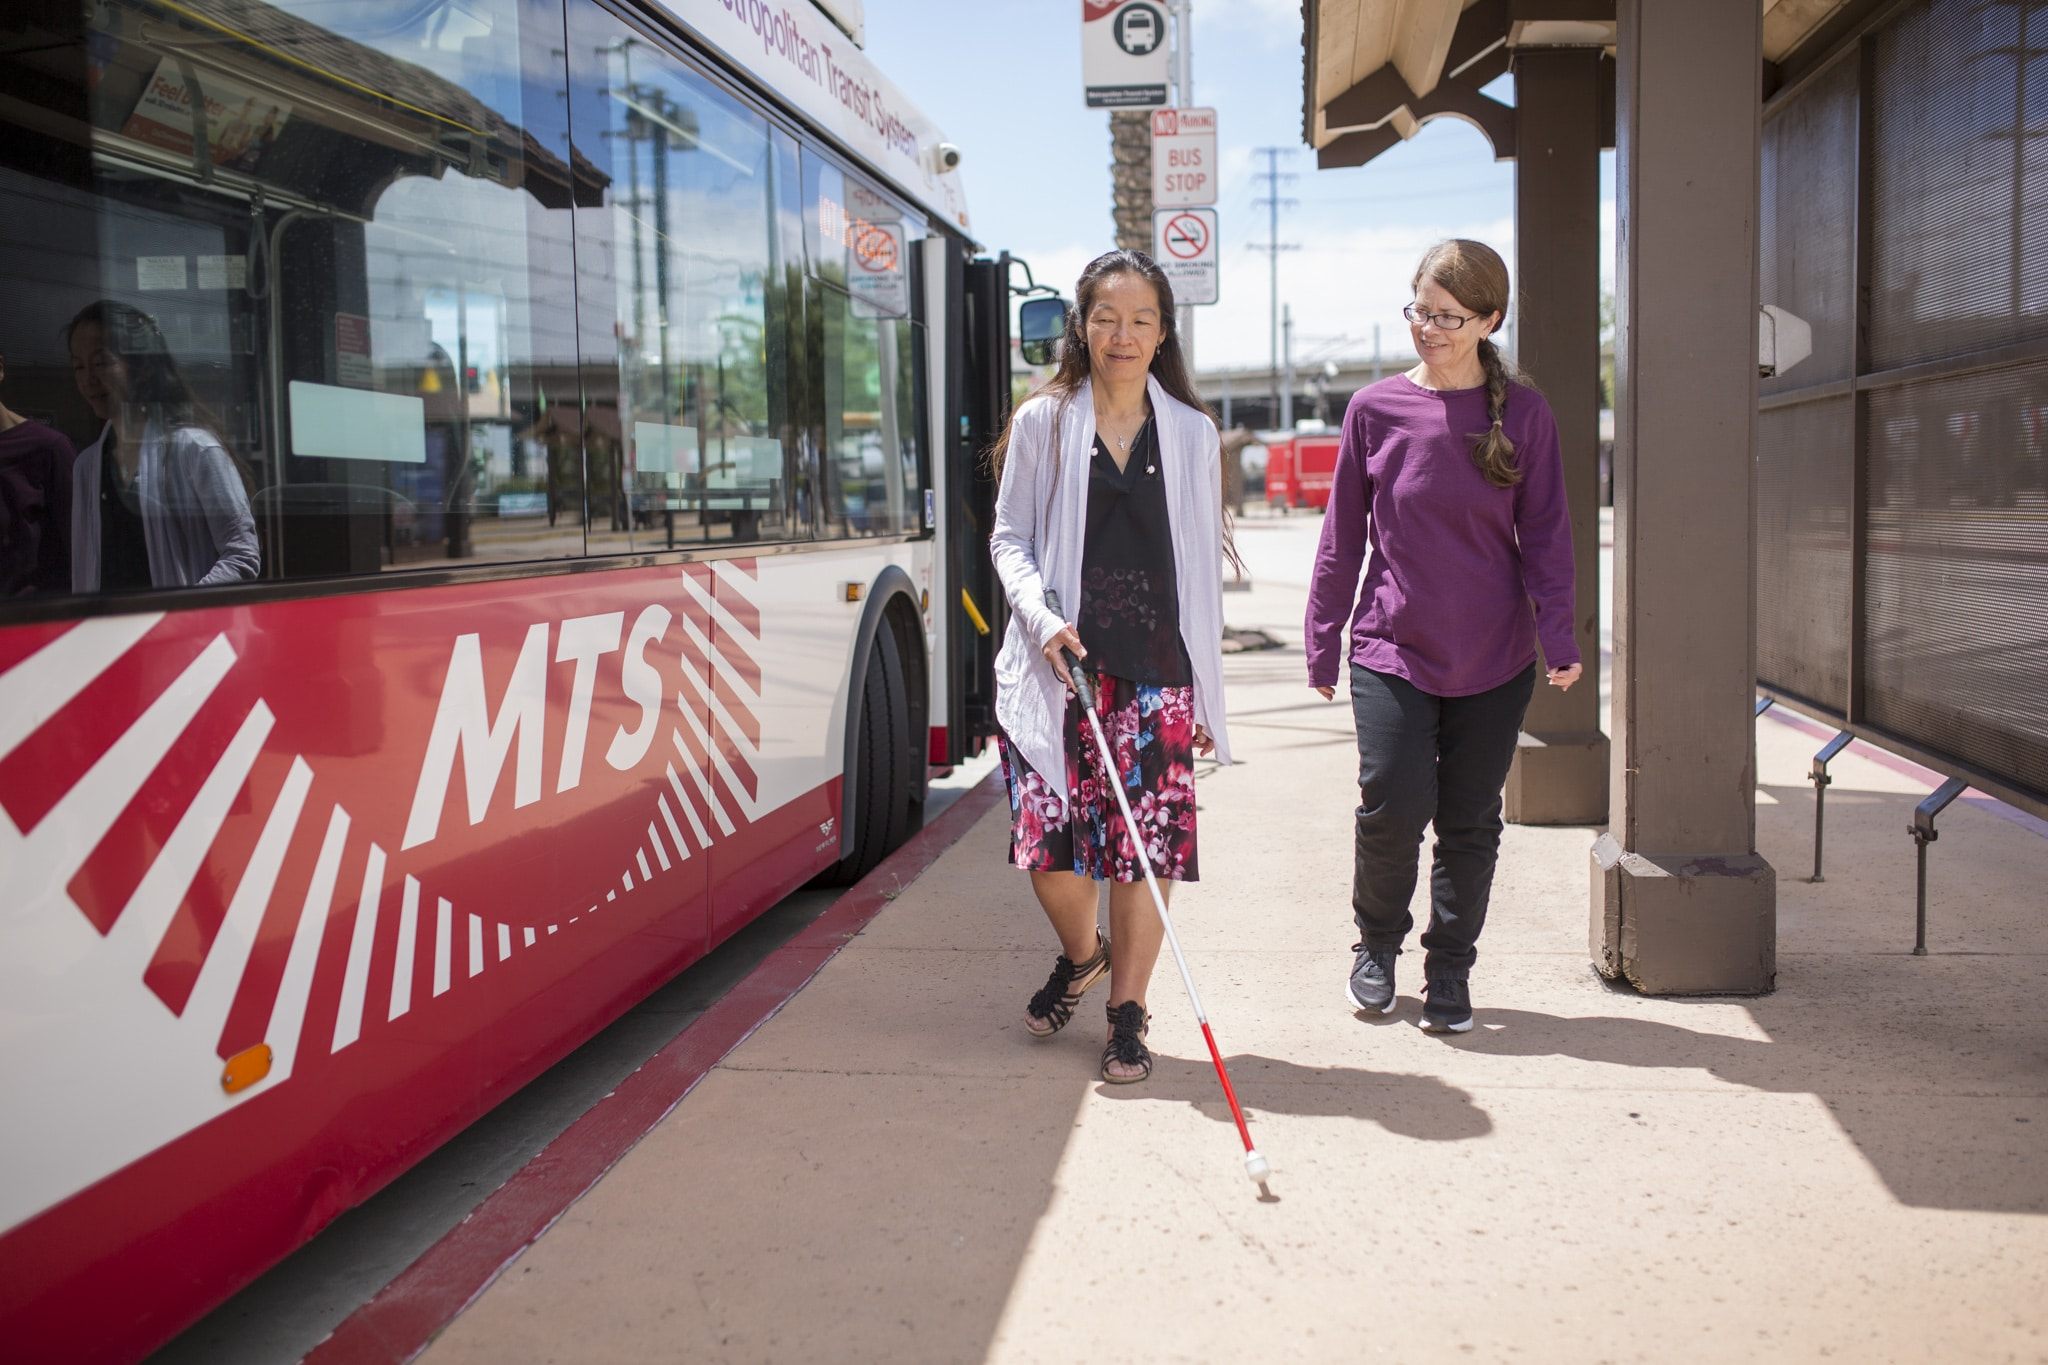 Braille Institute Orientation and Mobility Specialist Keema McClung walks with a woman with a white cane